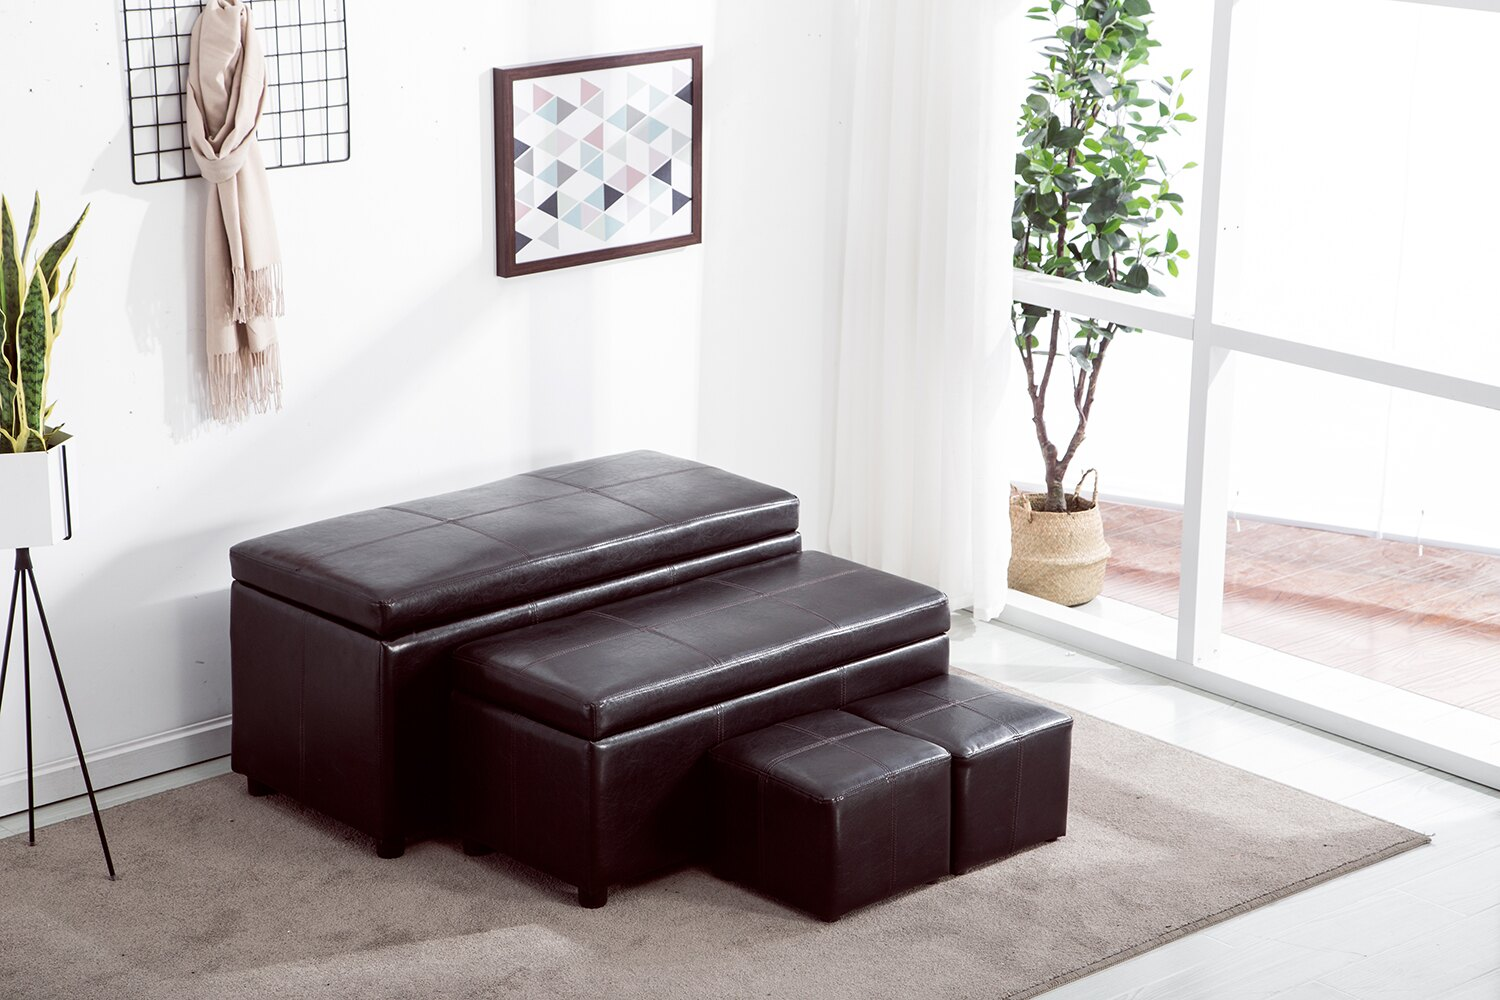 Mcombo 4pc Folding Faux Leather Homelegance Storage Ottoman Shoe Bench Foot Rest 5